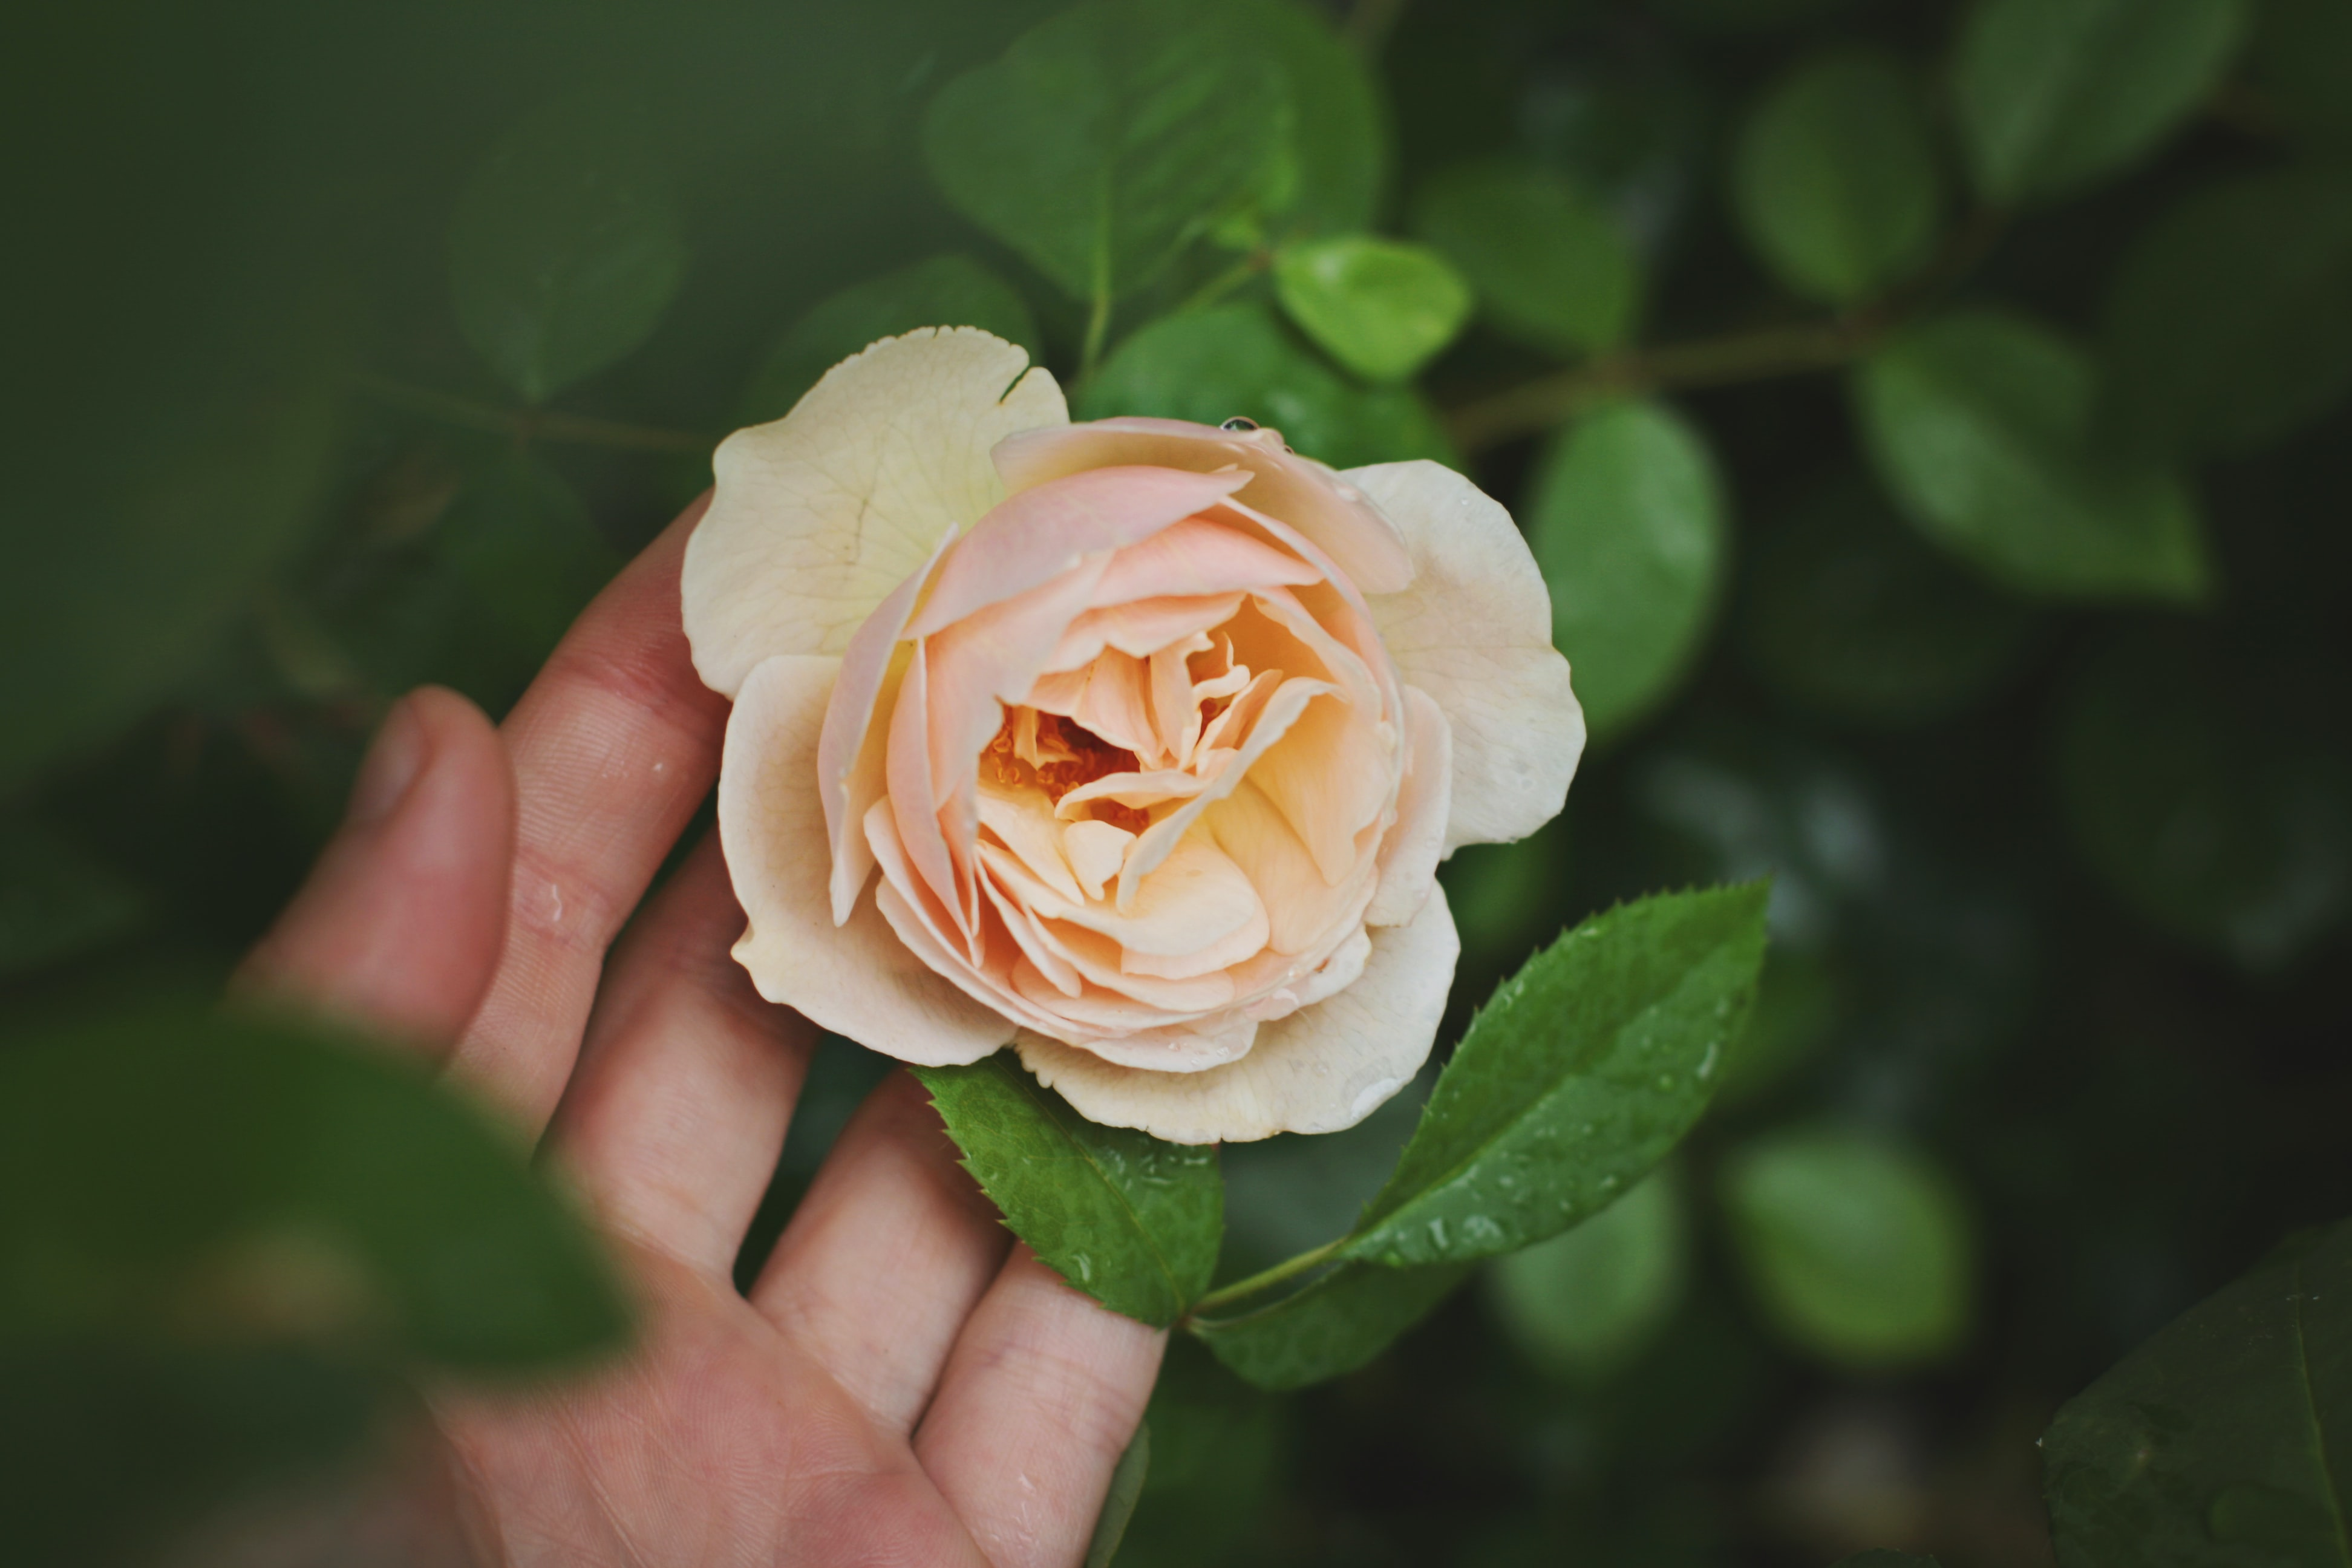 A person's hand gently touching the bottom of a white rose